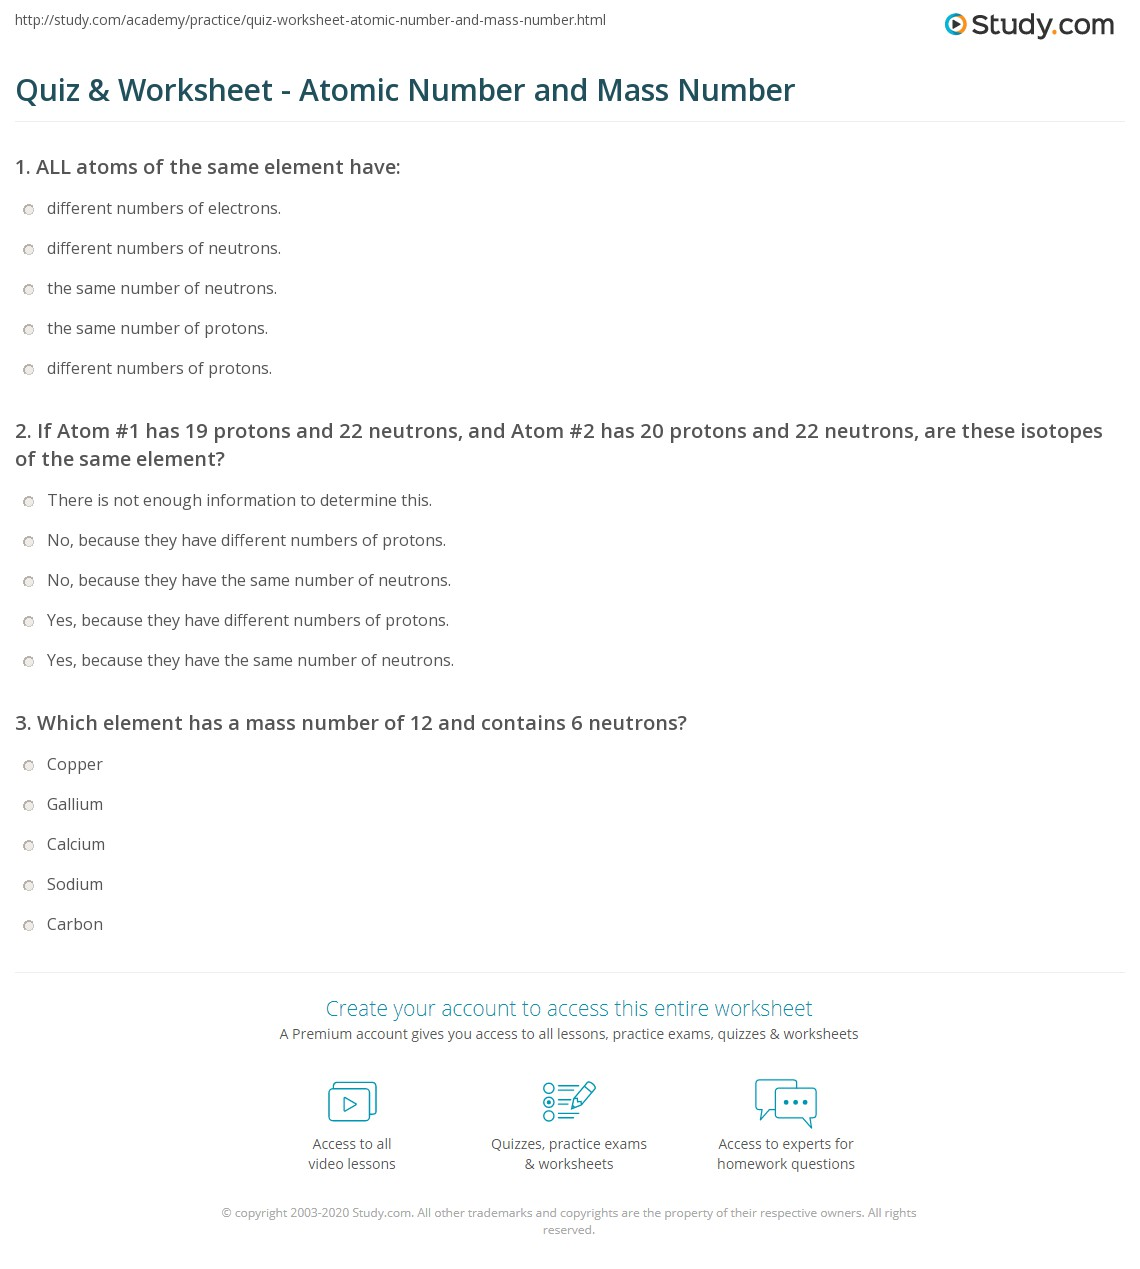 Quiz & Worksheet Atomic Number and Mass Number